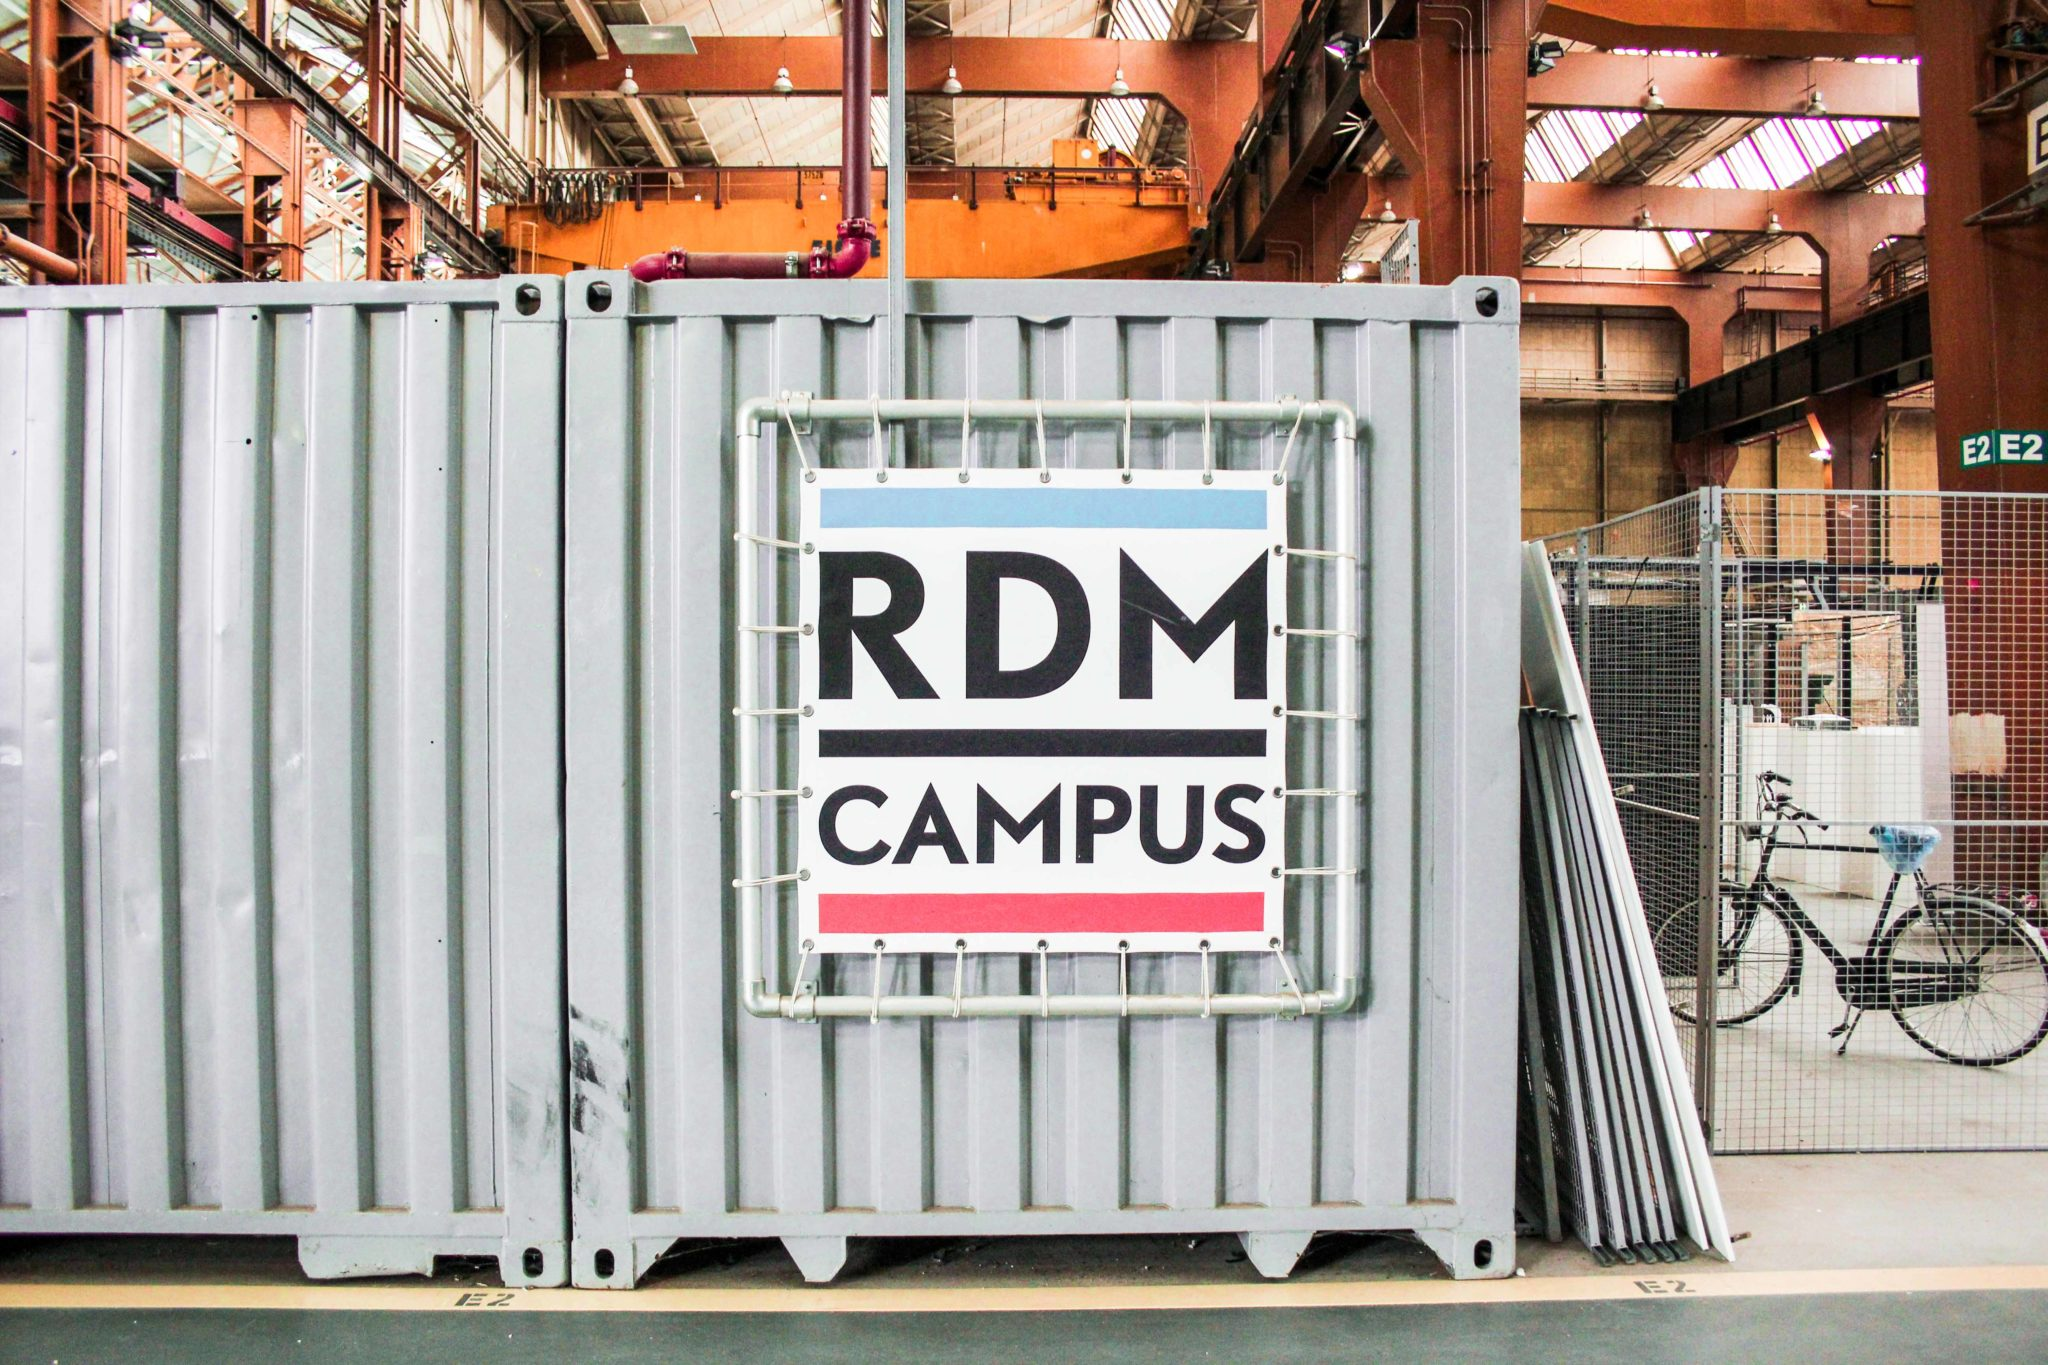 Rotterdam Makers District Meet Roosegaarde RDM Innovaition Docks by Quite a Looker Blog